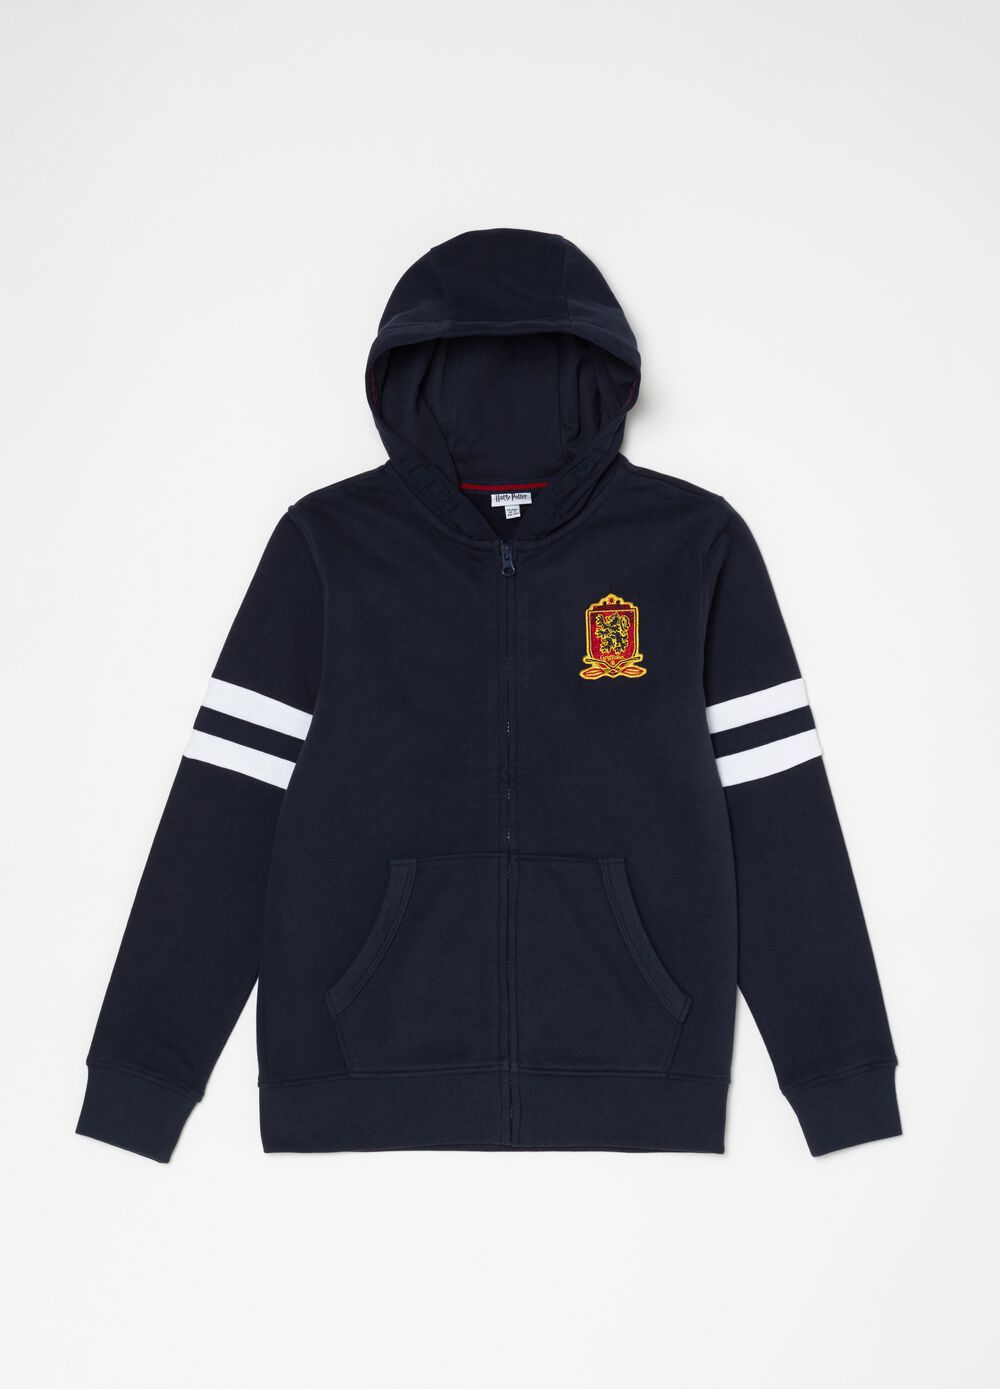 Warner Bros Harry Potter sweatshirt with hood